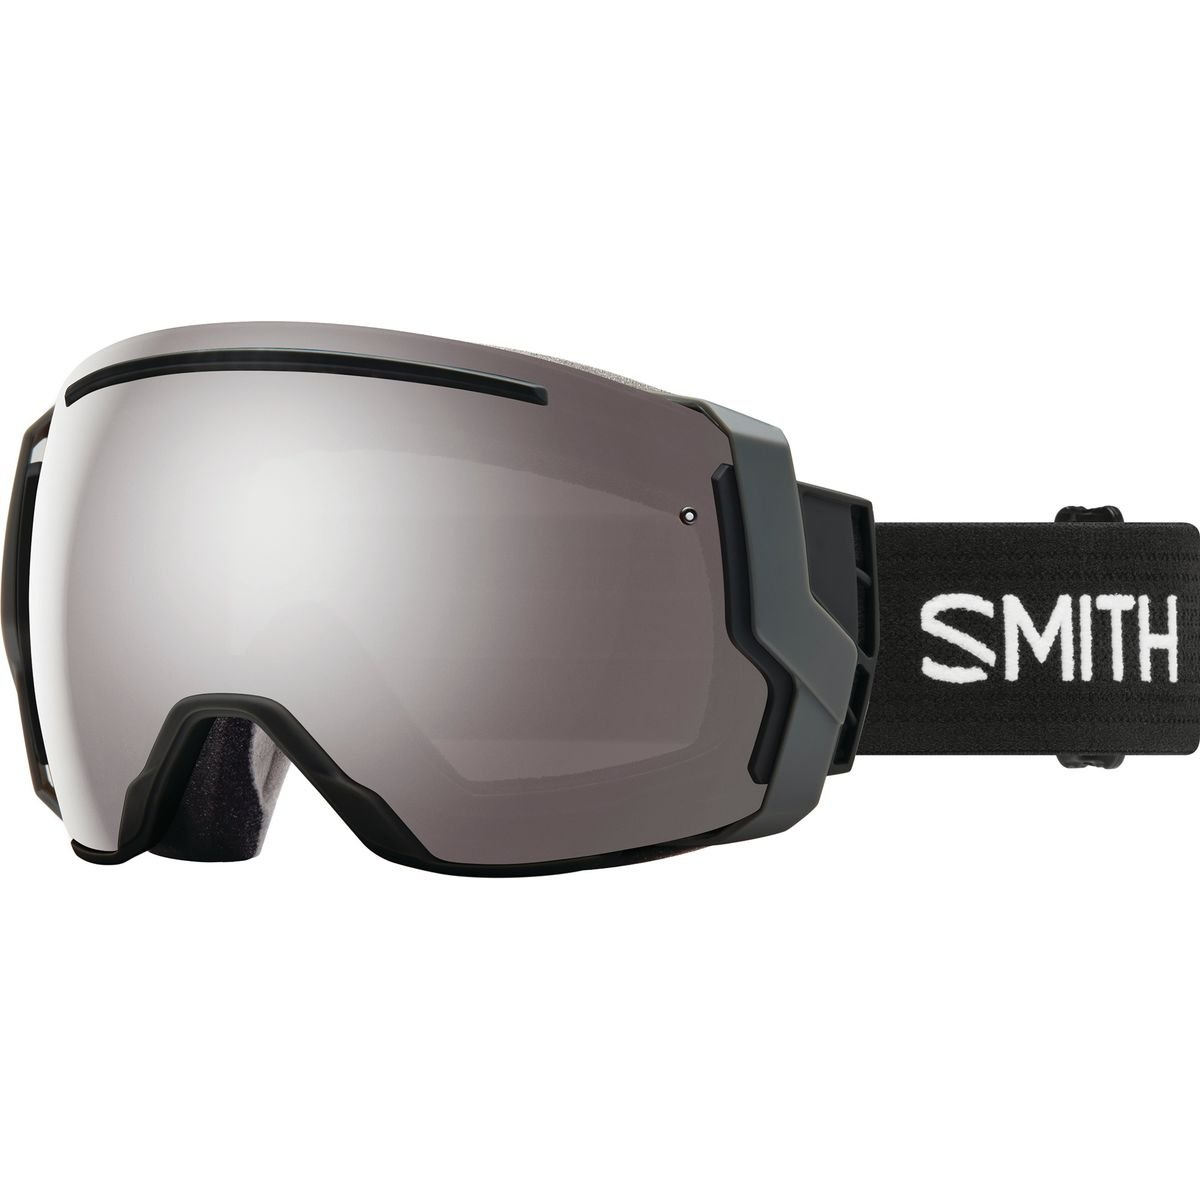 Smith Optics Adult I/O 7 Snow Goggles Black / ChromaPop Sun Platinum Mirror by Smith Optics